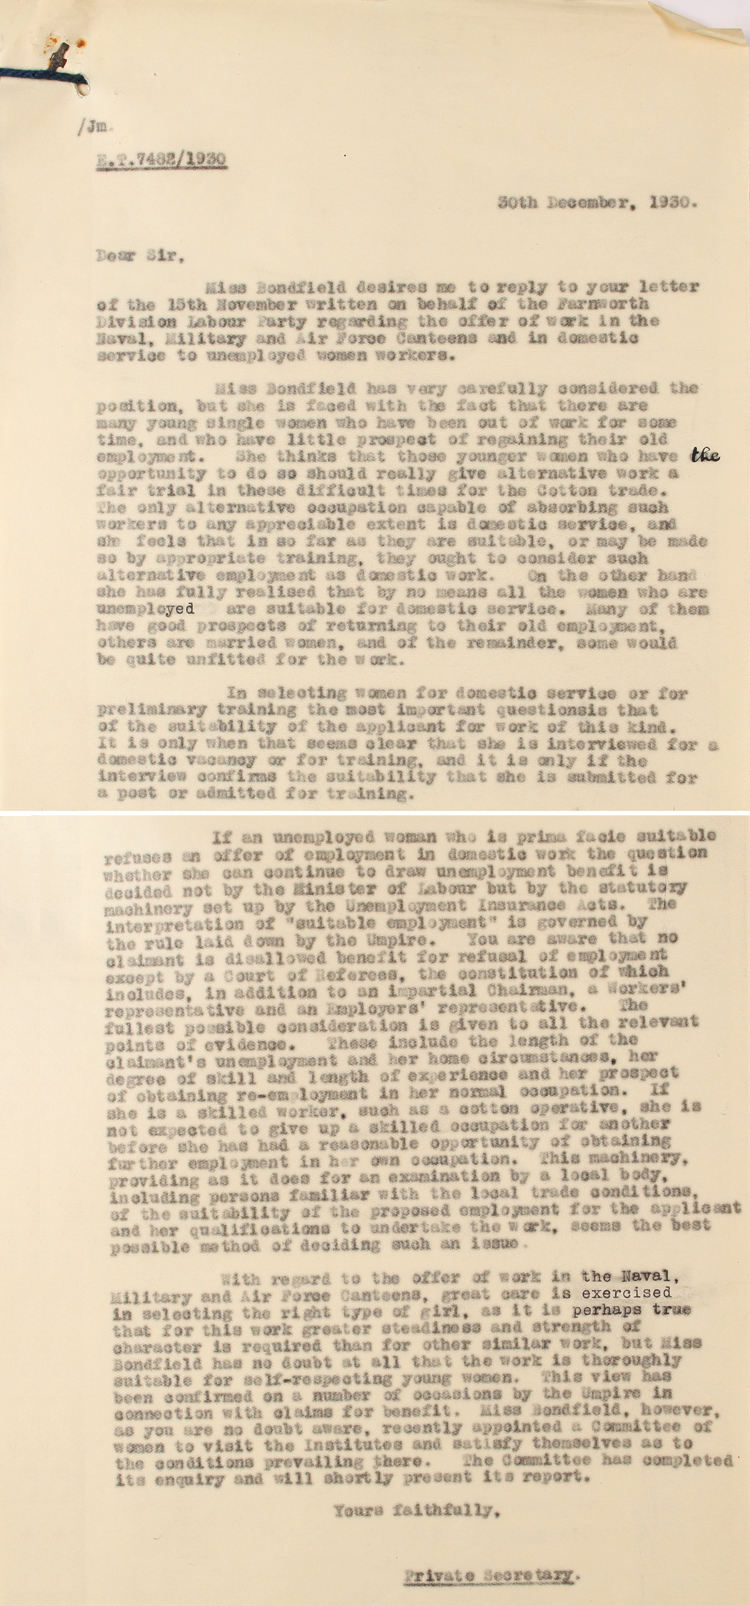 Letter to the Farnworth Labour Party on behalf of Margaret Bondfield, Minister of Labour, 30th December 1930 regarding unemployed women (LAB 2/1344/ET7560/1930)